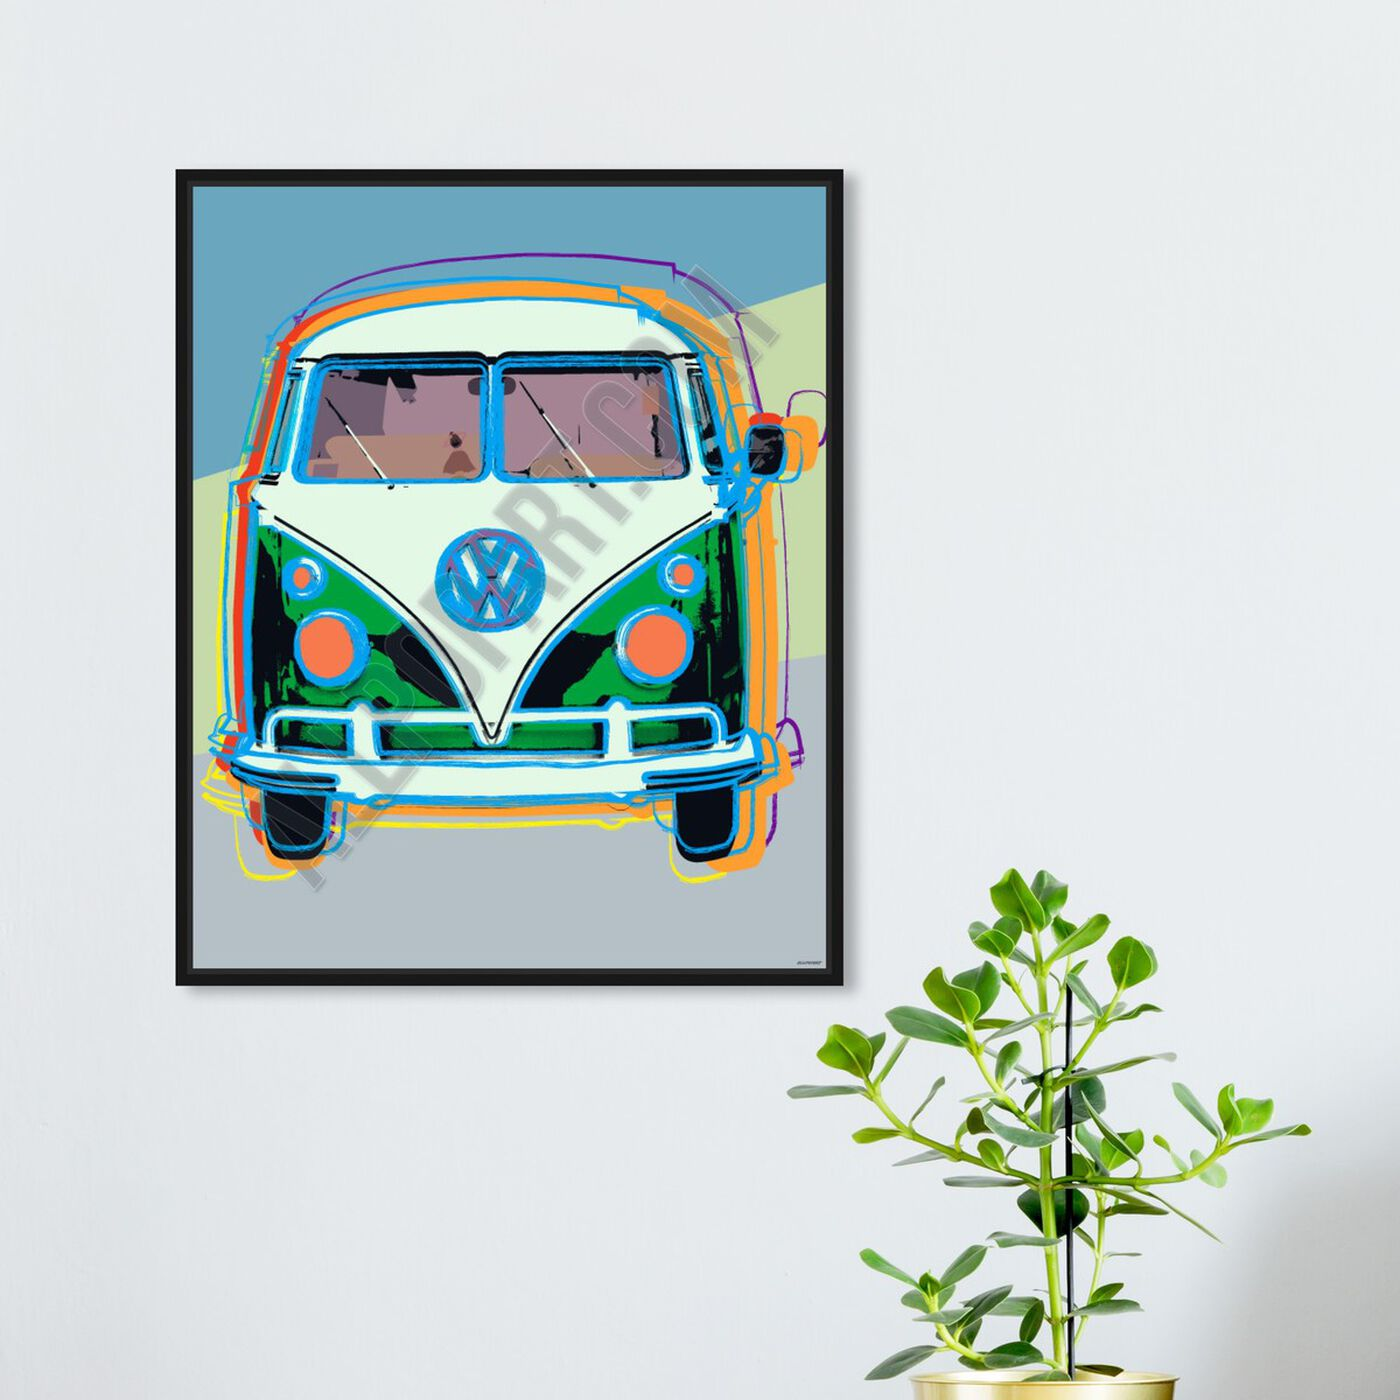 Hanging view of Pastel Van featuring transportation and trucks and busses art.